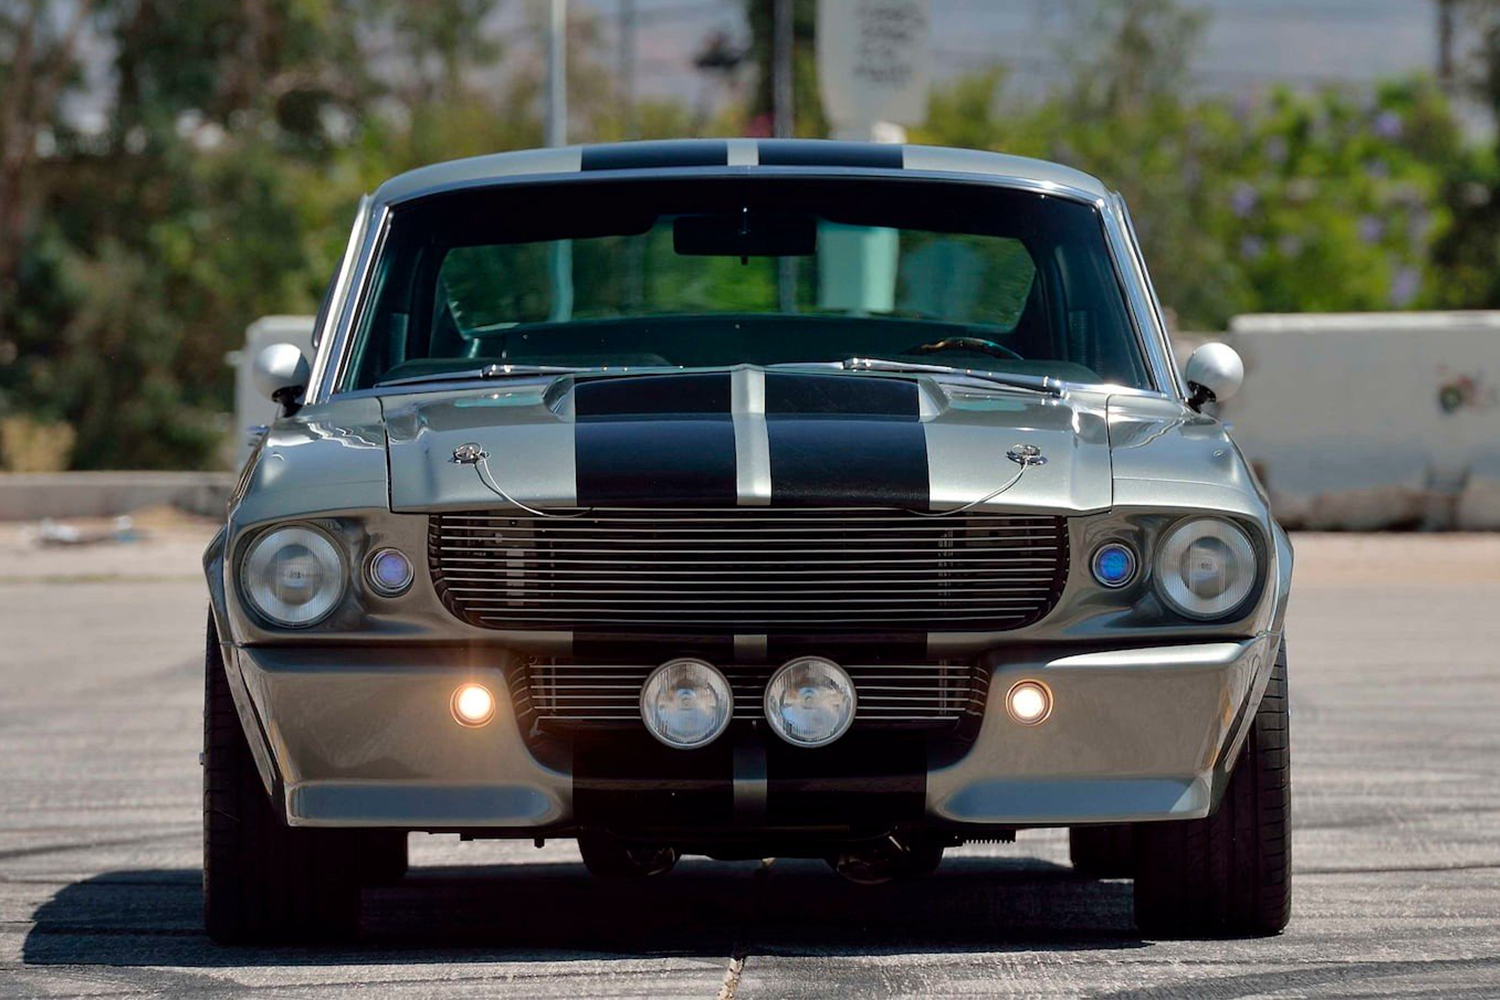 Eleanor 1967 Shelby Mustang GT500 From Gone in 60 Seconds